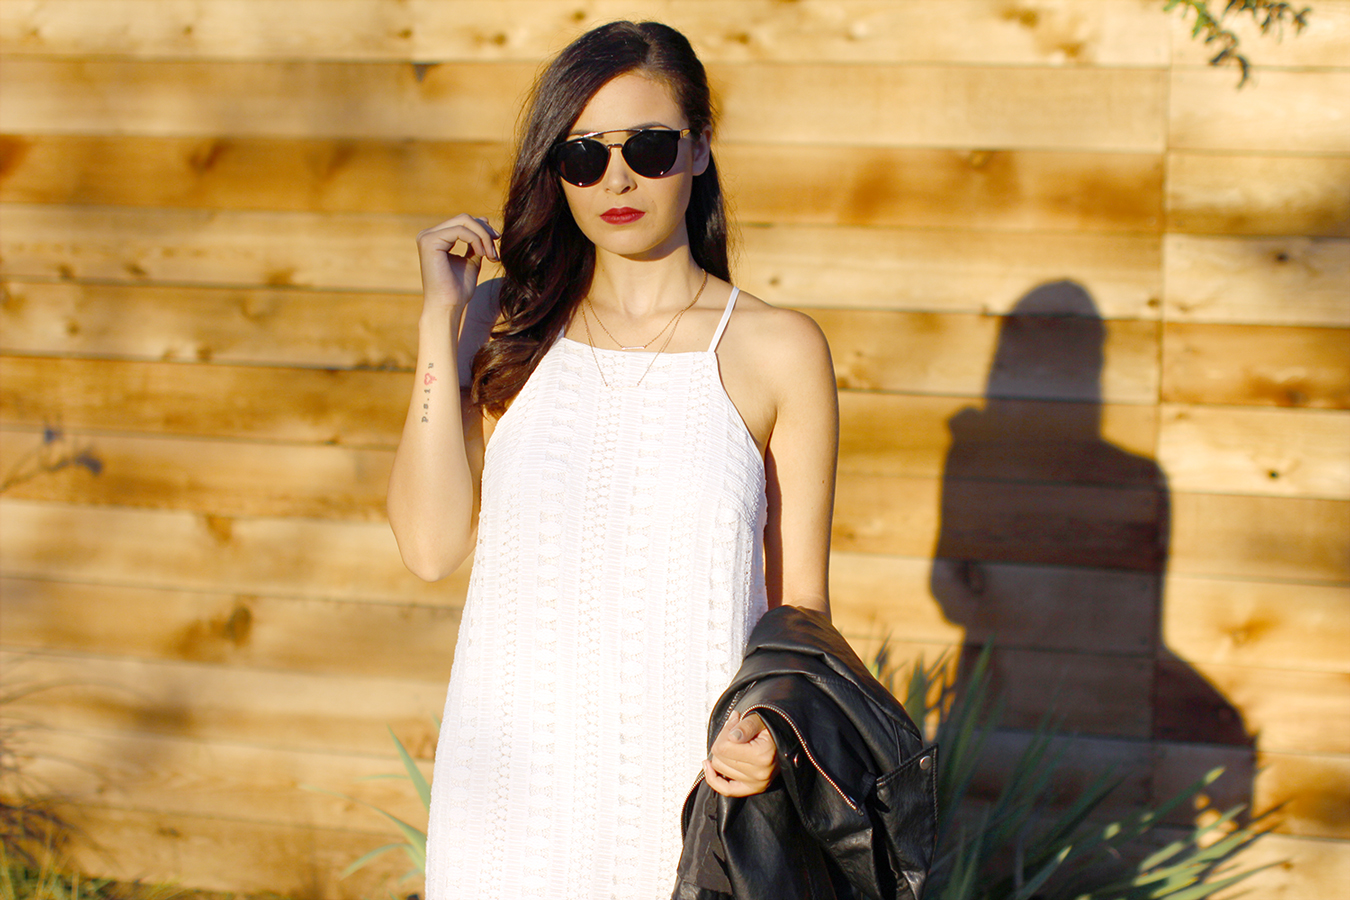 FIXIN-TO-THRILL-WHITE-HALTER-DRESS-STRAPPY-HEELS-LEATHER-TREND-FALL-OCTOBER-ATX-AUSTIN-STYLE-BLOG-FW15-TRENDY-CHIC-GLAM-TEXAS-4